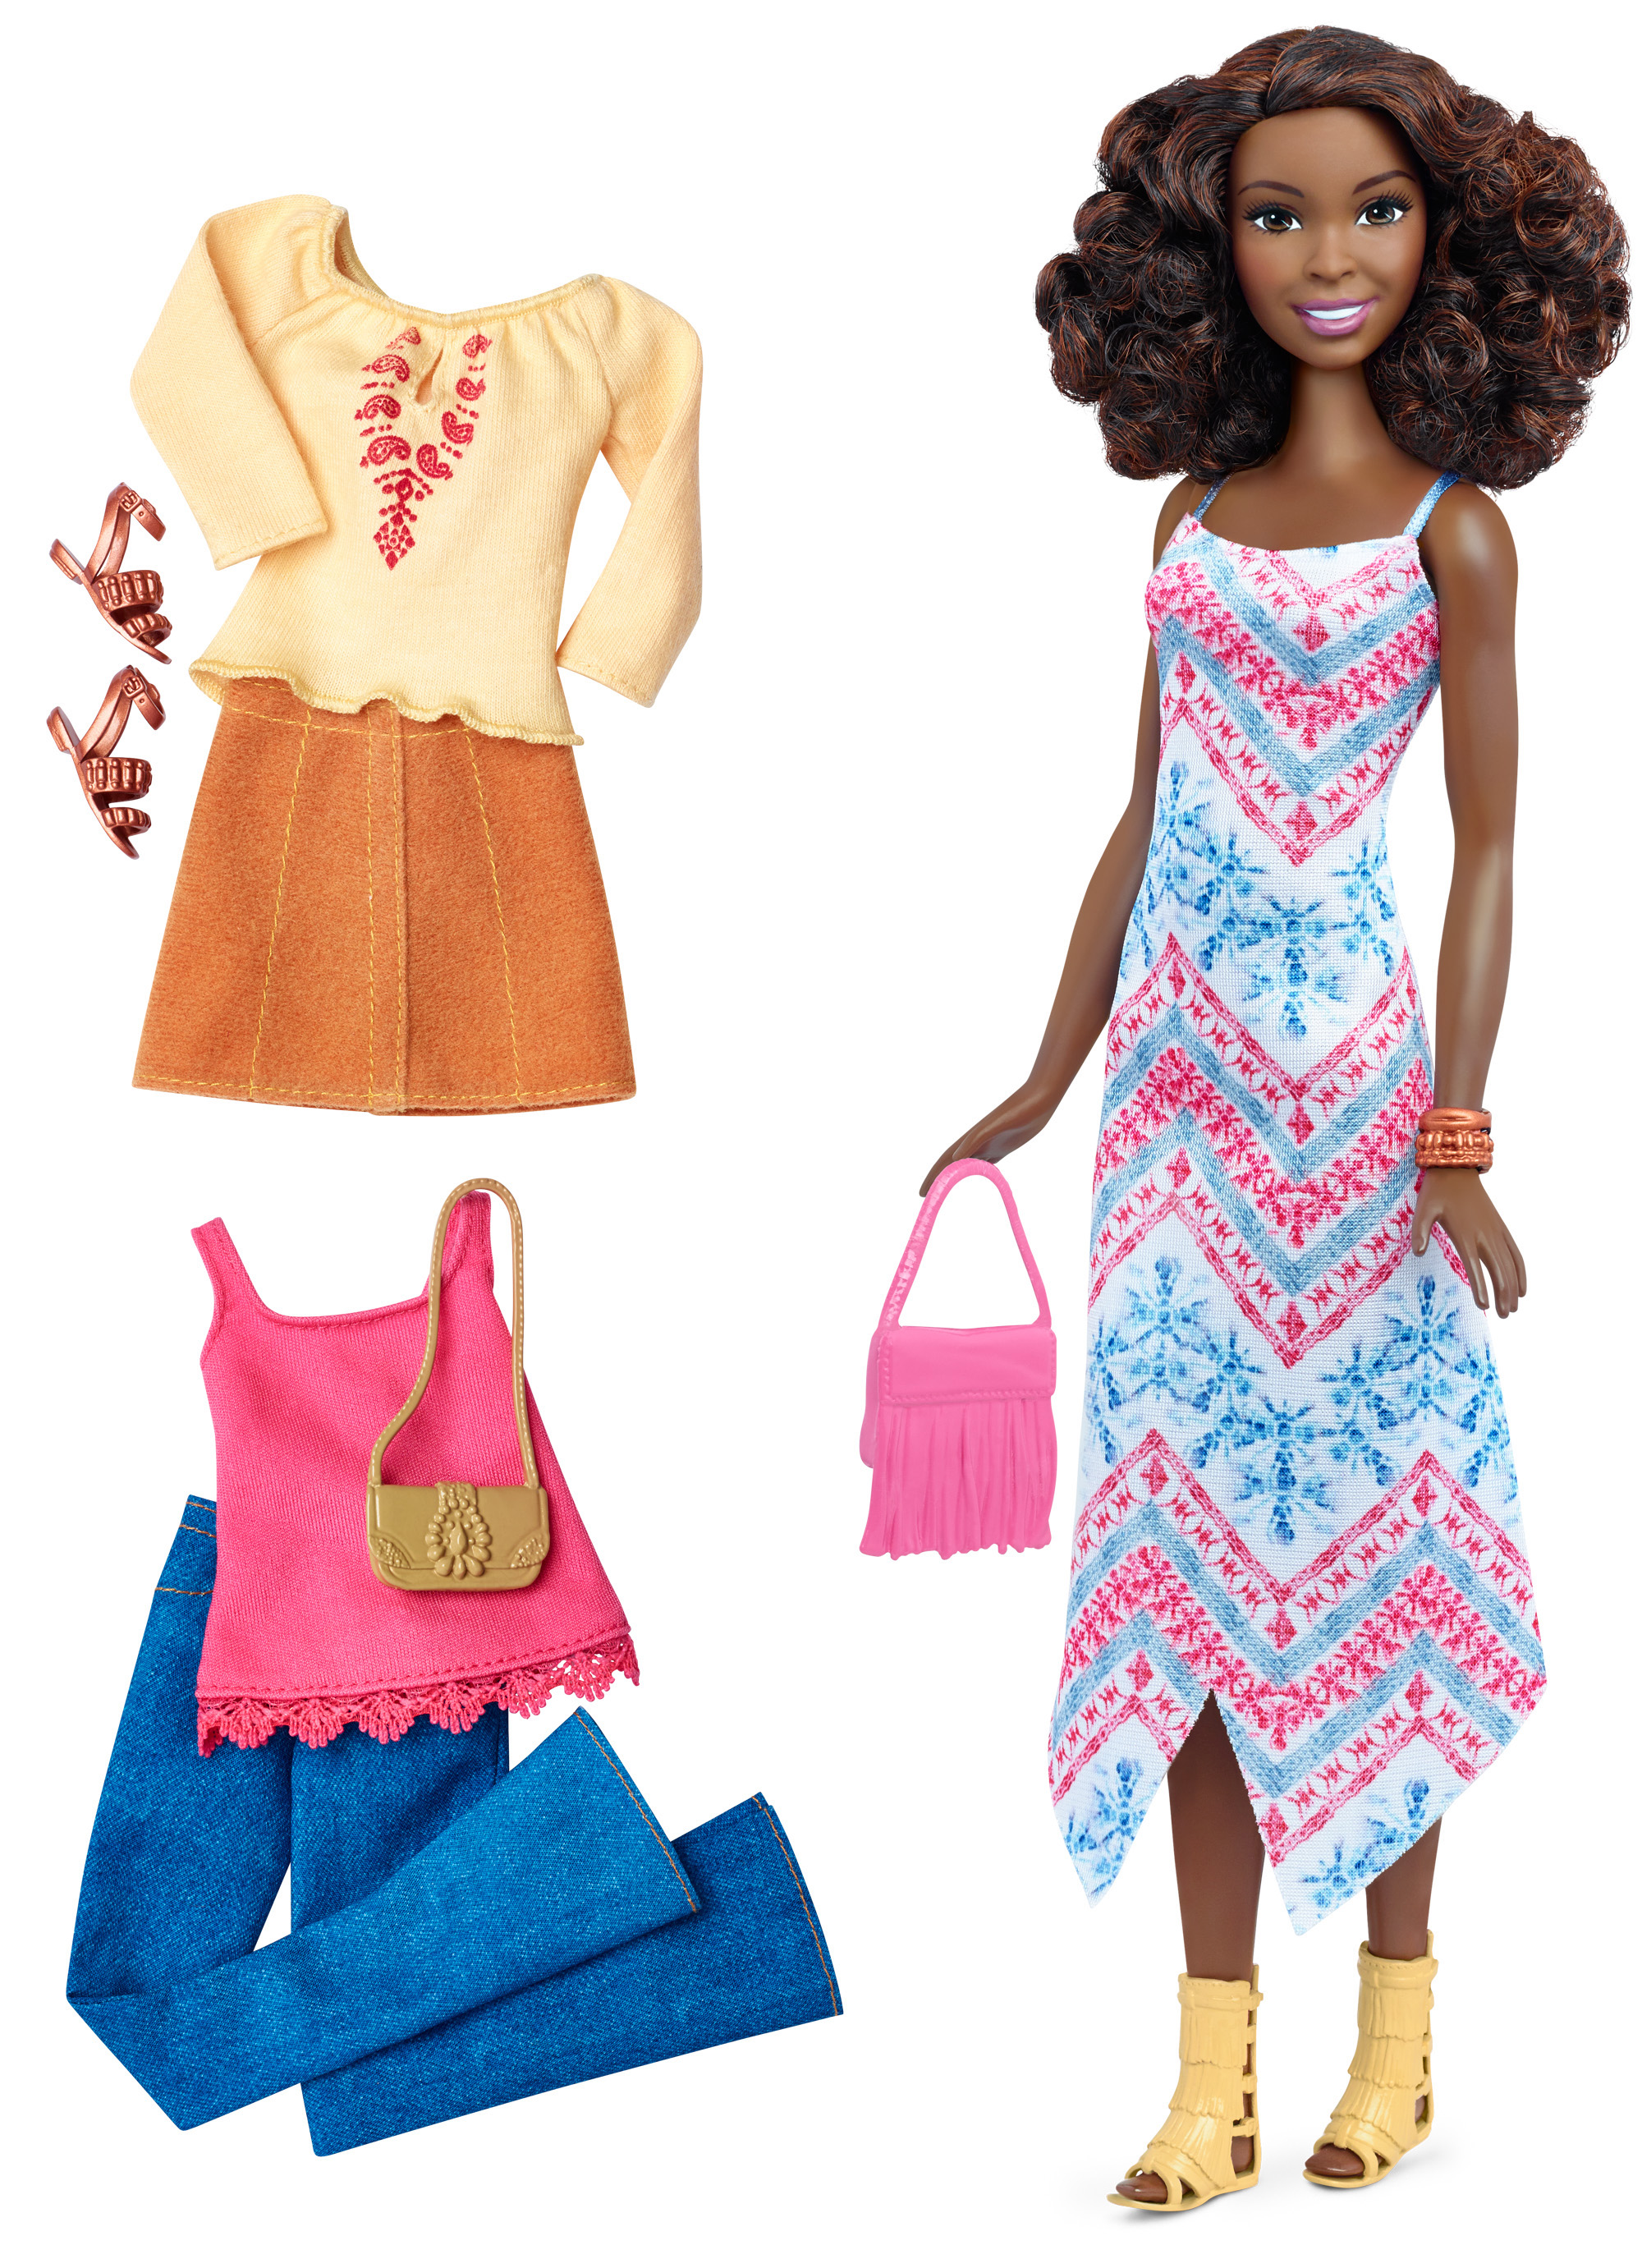 Barbie Fashionistas Doll & Fashions, Boho Fringe by MATTEL INC.